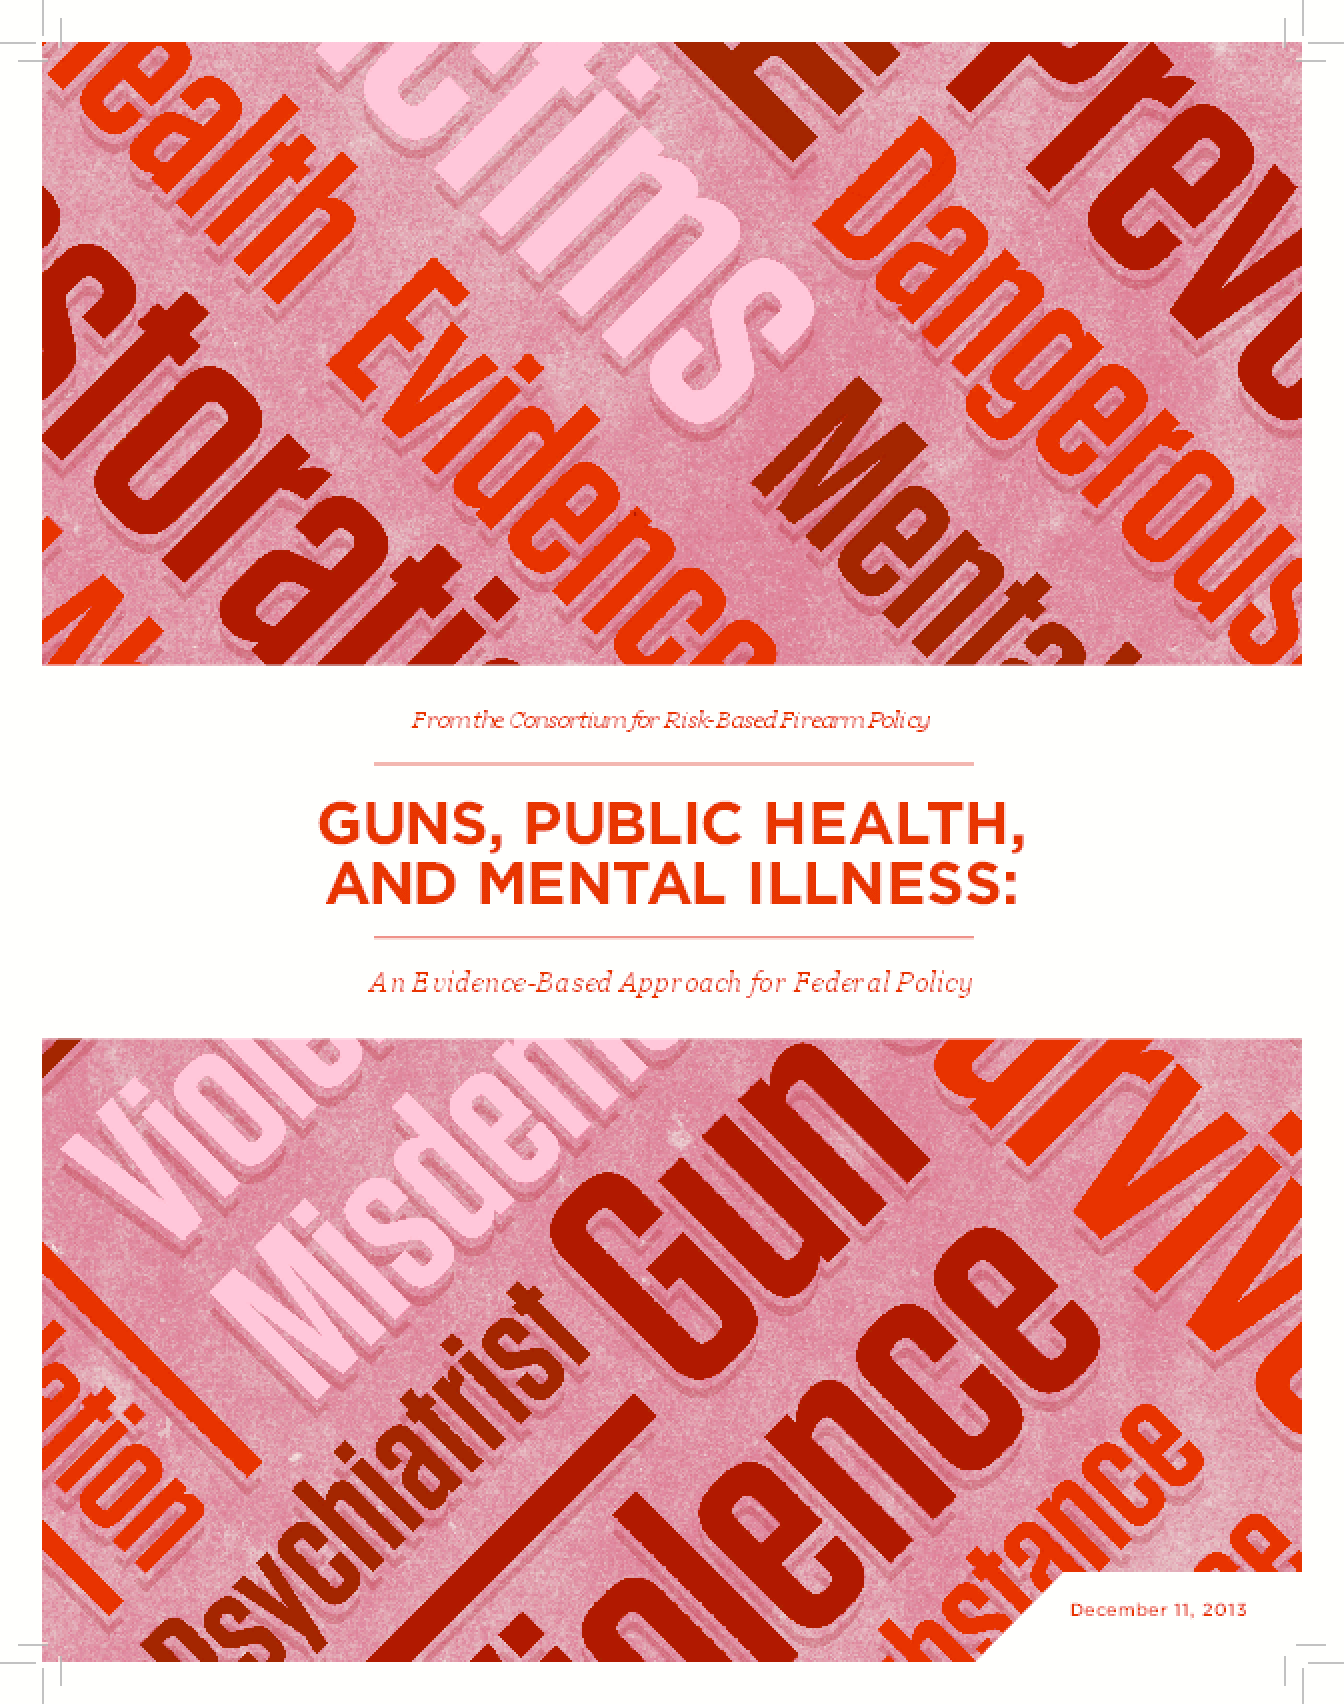 Guns, Public Health and Mental Illness: An Evidence-Based Approach for Federal Policy